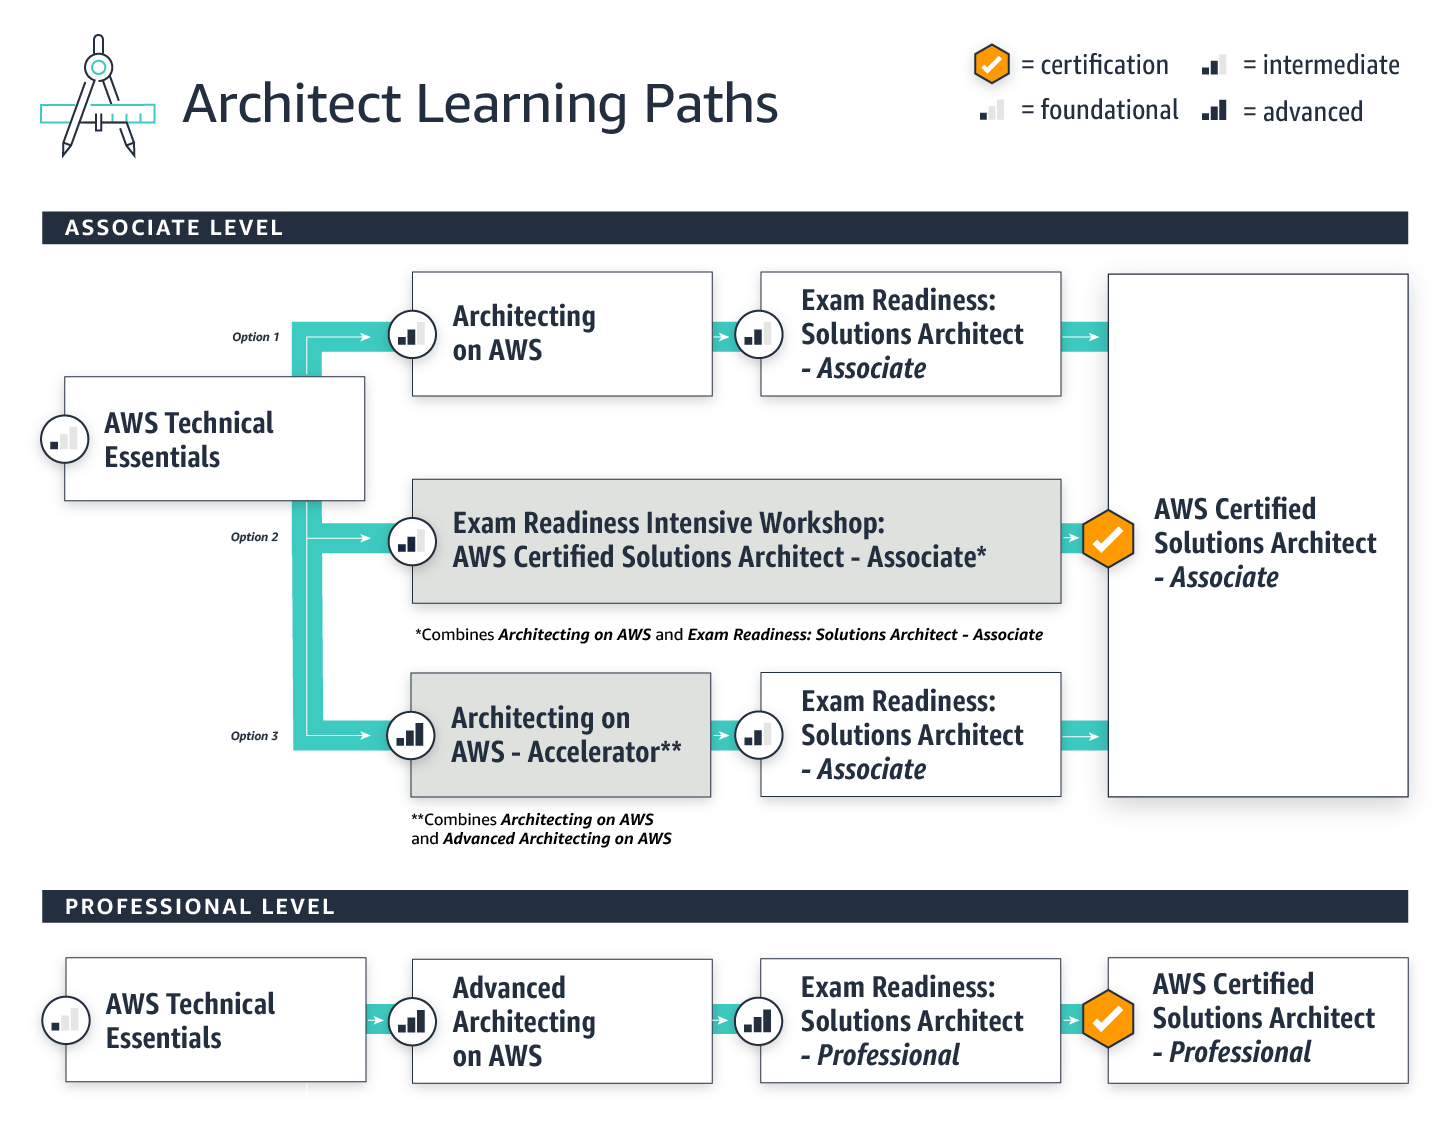 LearningPath-Architect_Aug2020_Architect